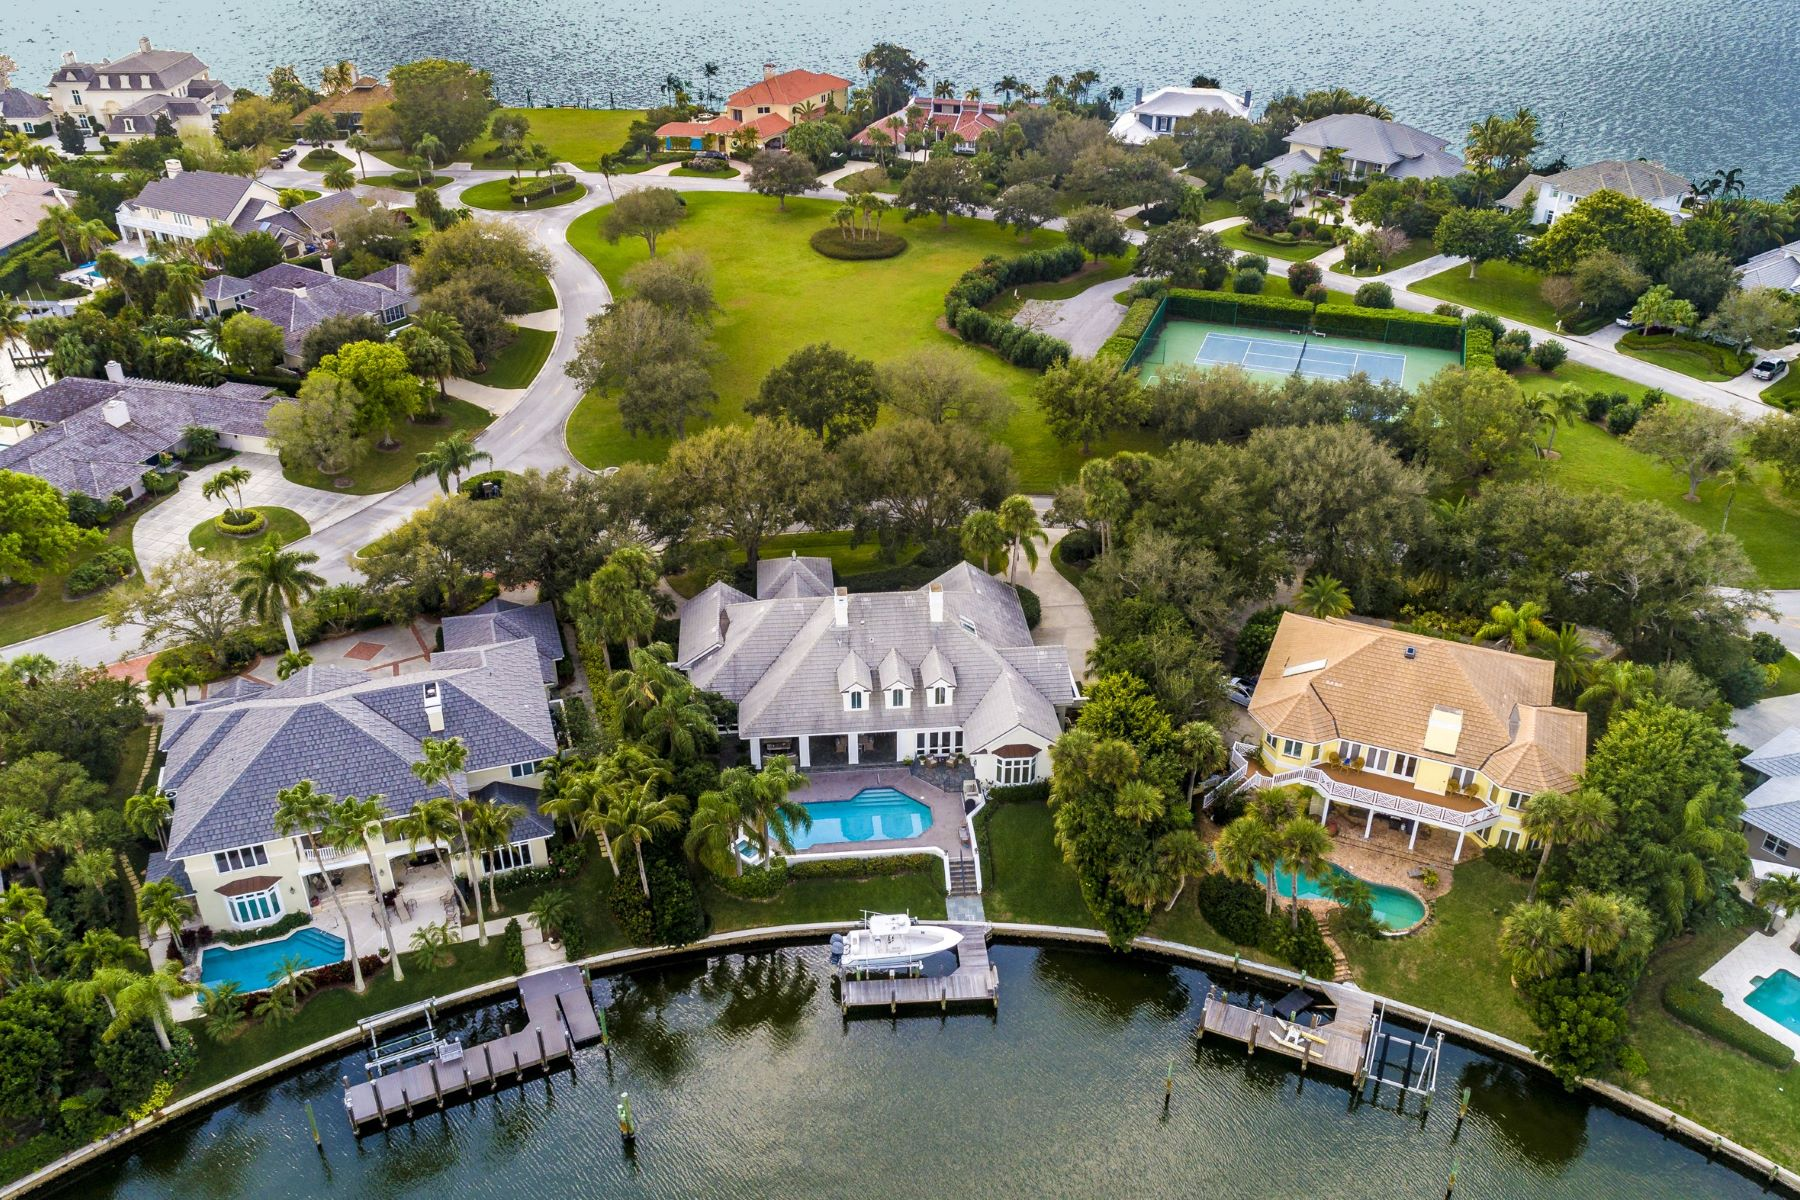 Property for Sale at 170 Anchor Drive Vero Beach, Florida 32963 United States